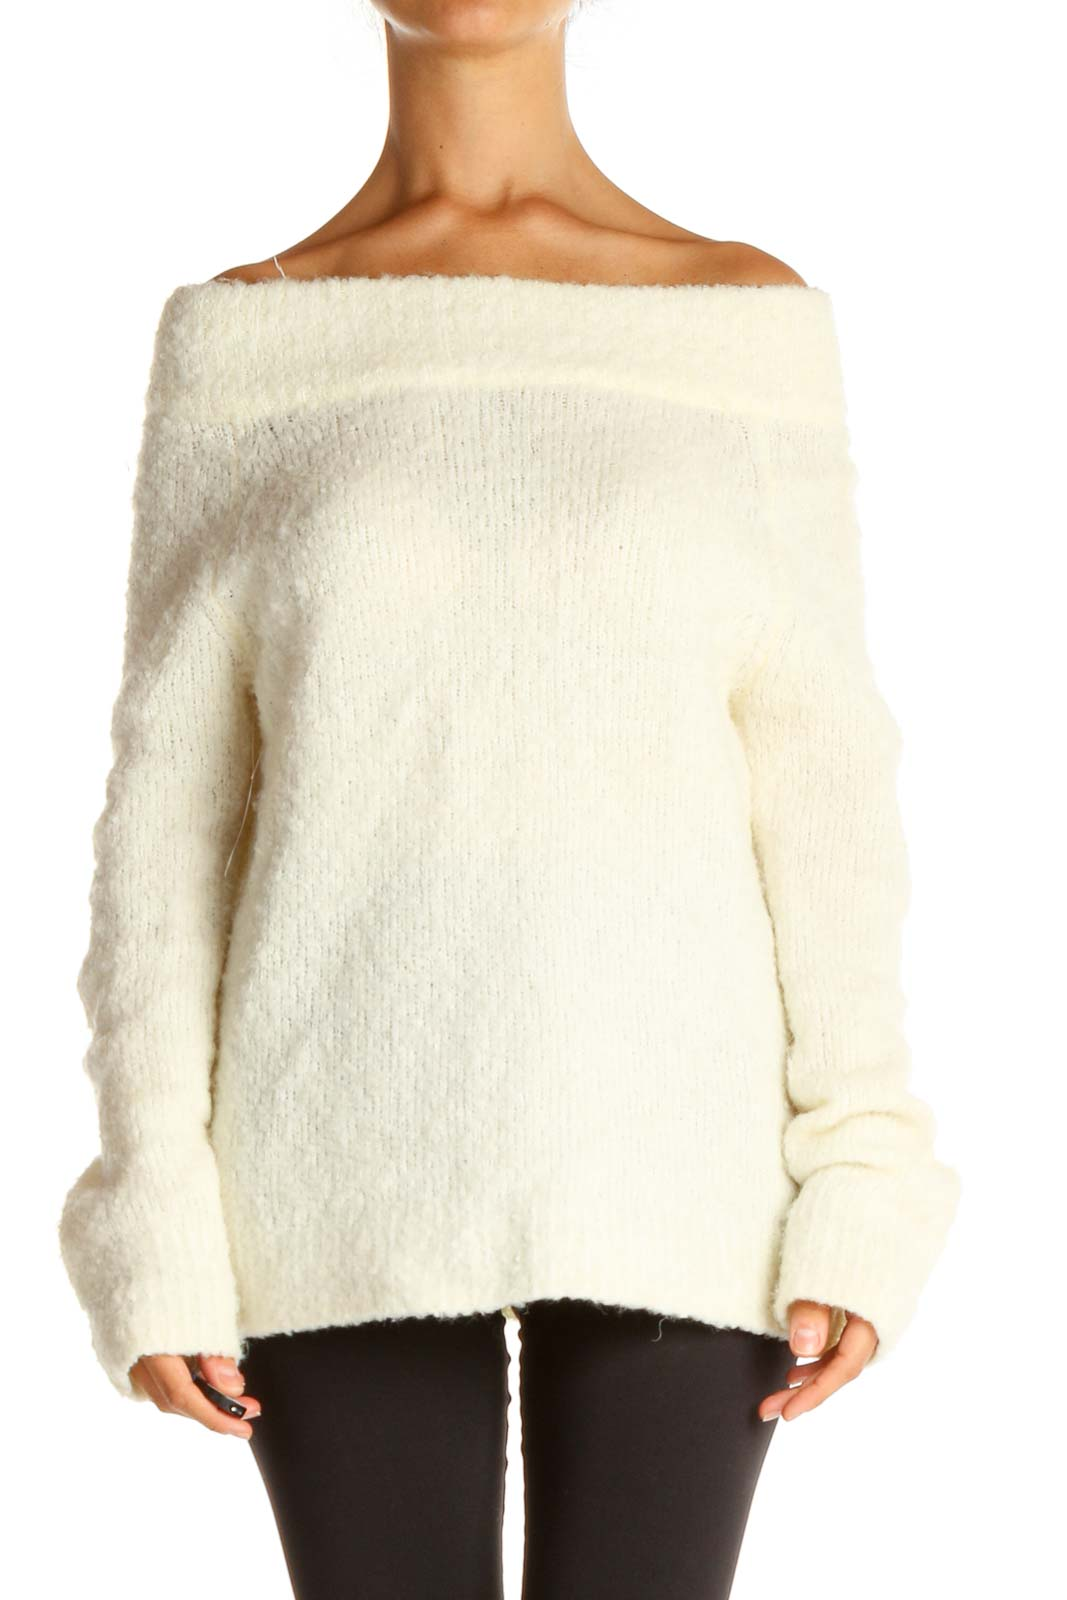 White Casual Sweater Front